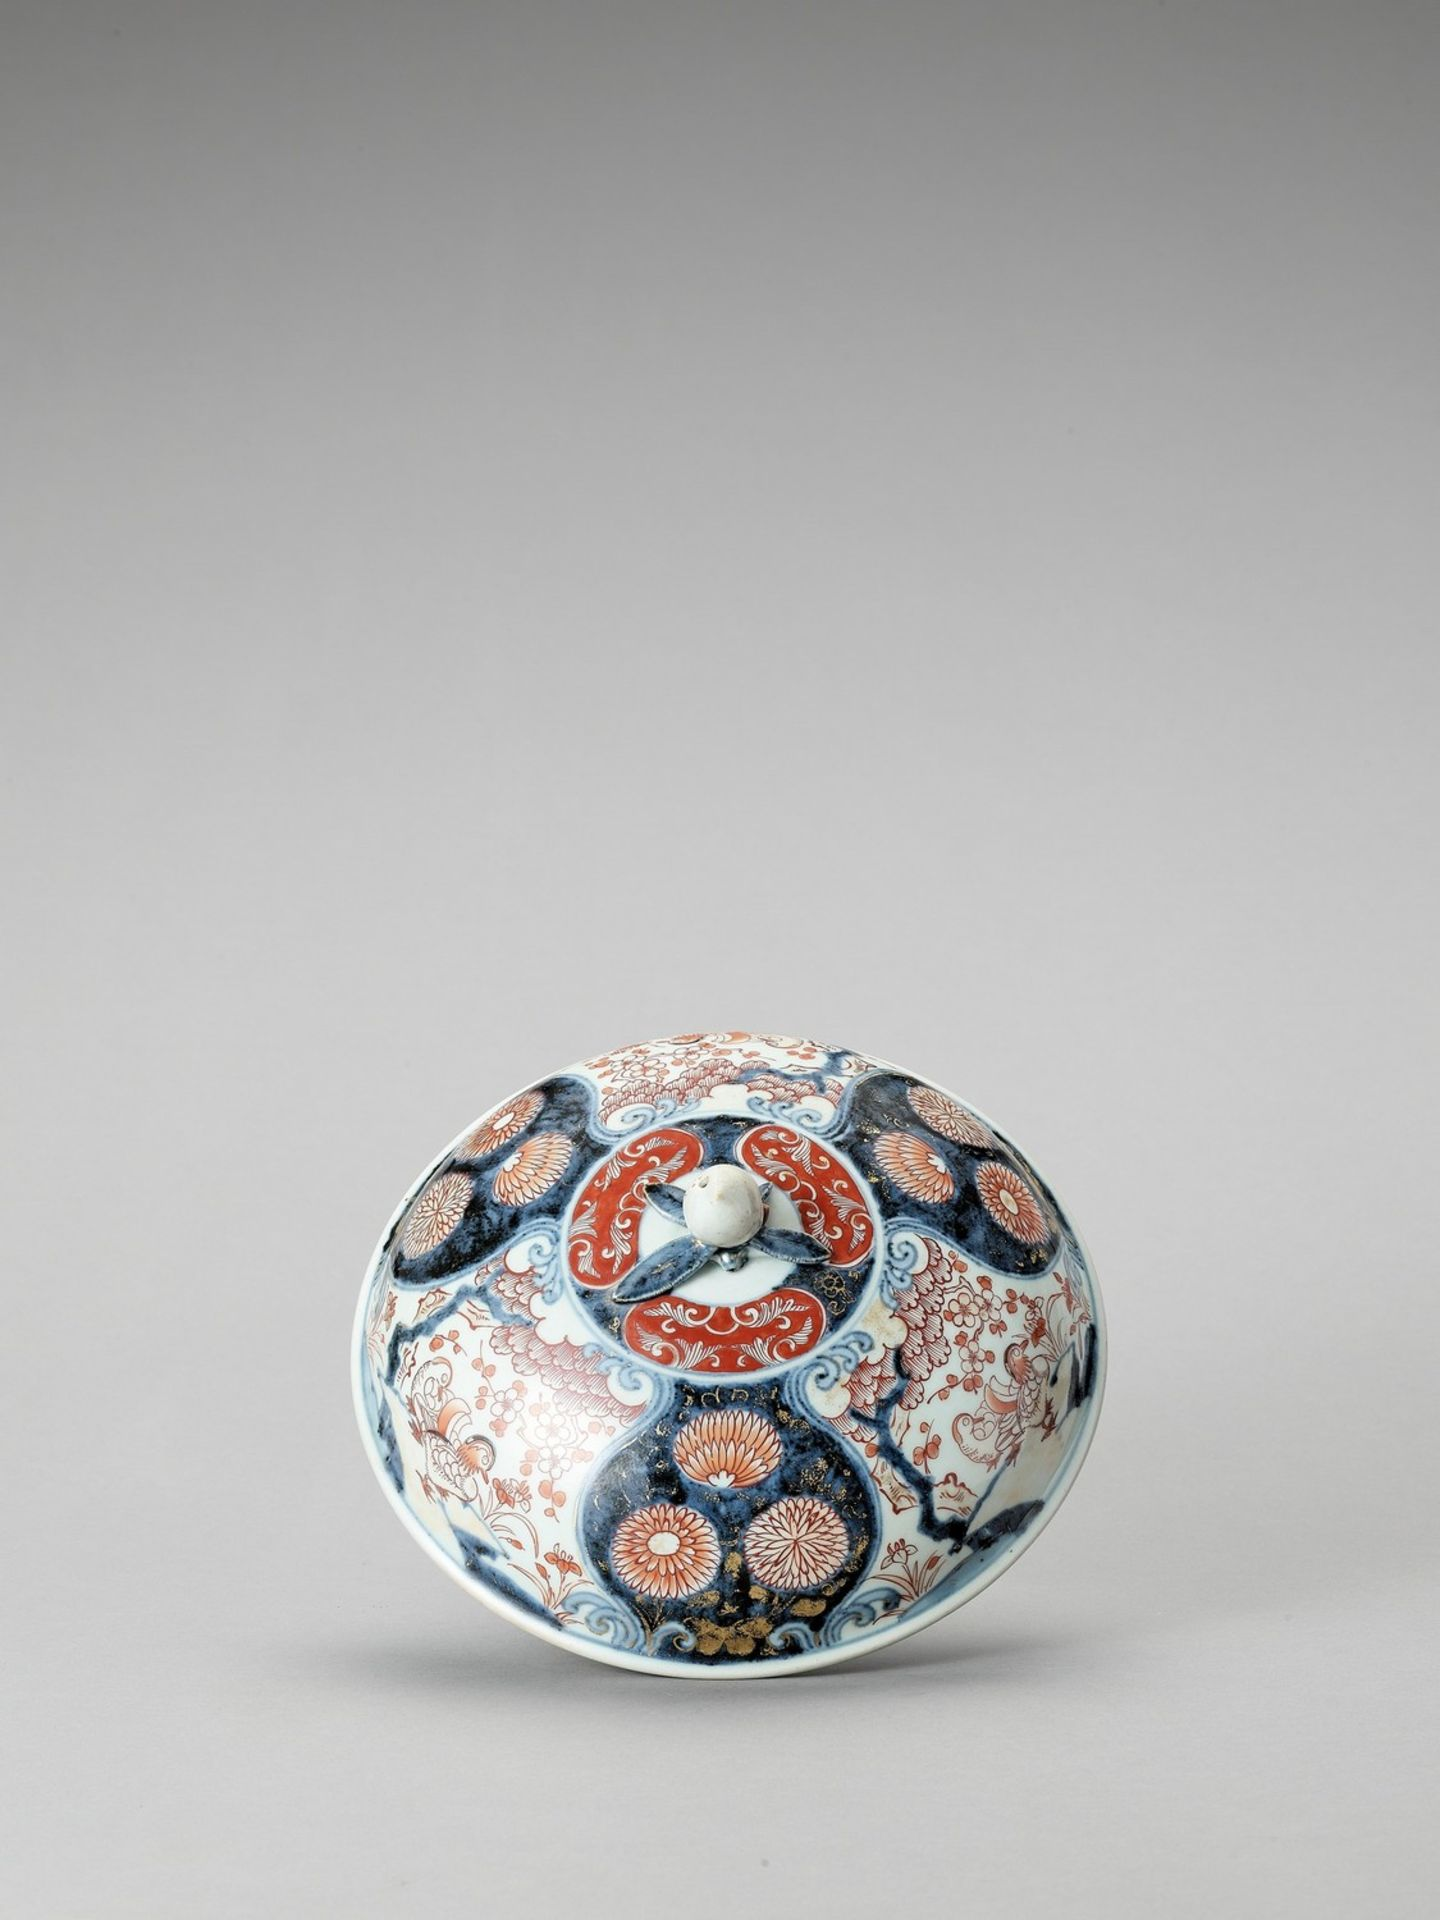 AN IMARI PORCELAIN BOX WITH COVER - Image 6 of 7